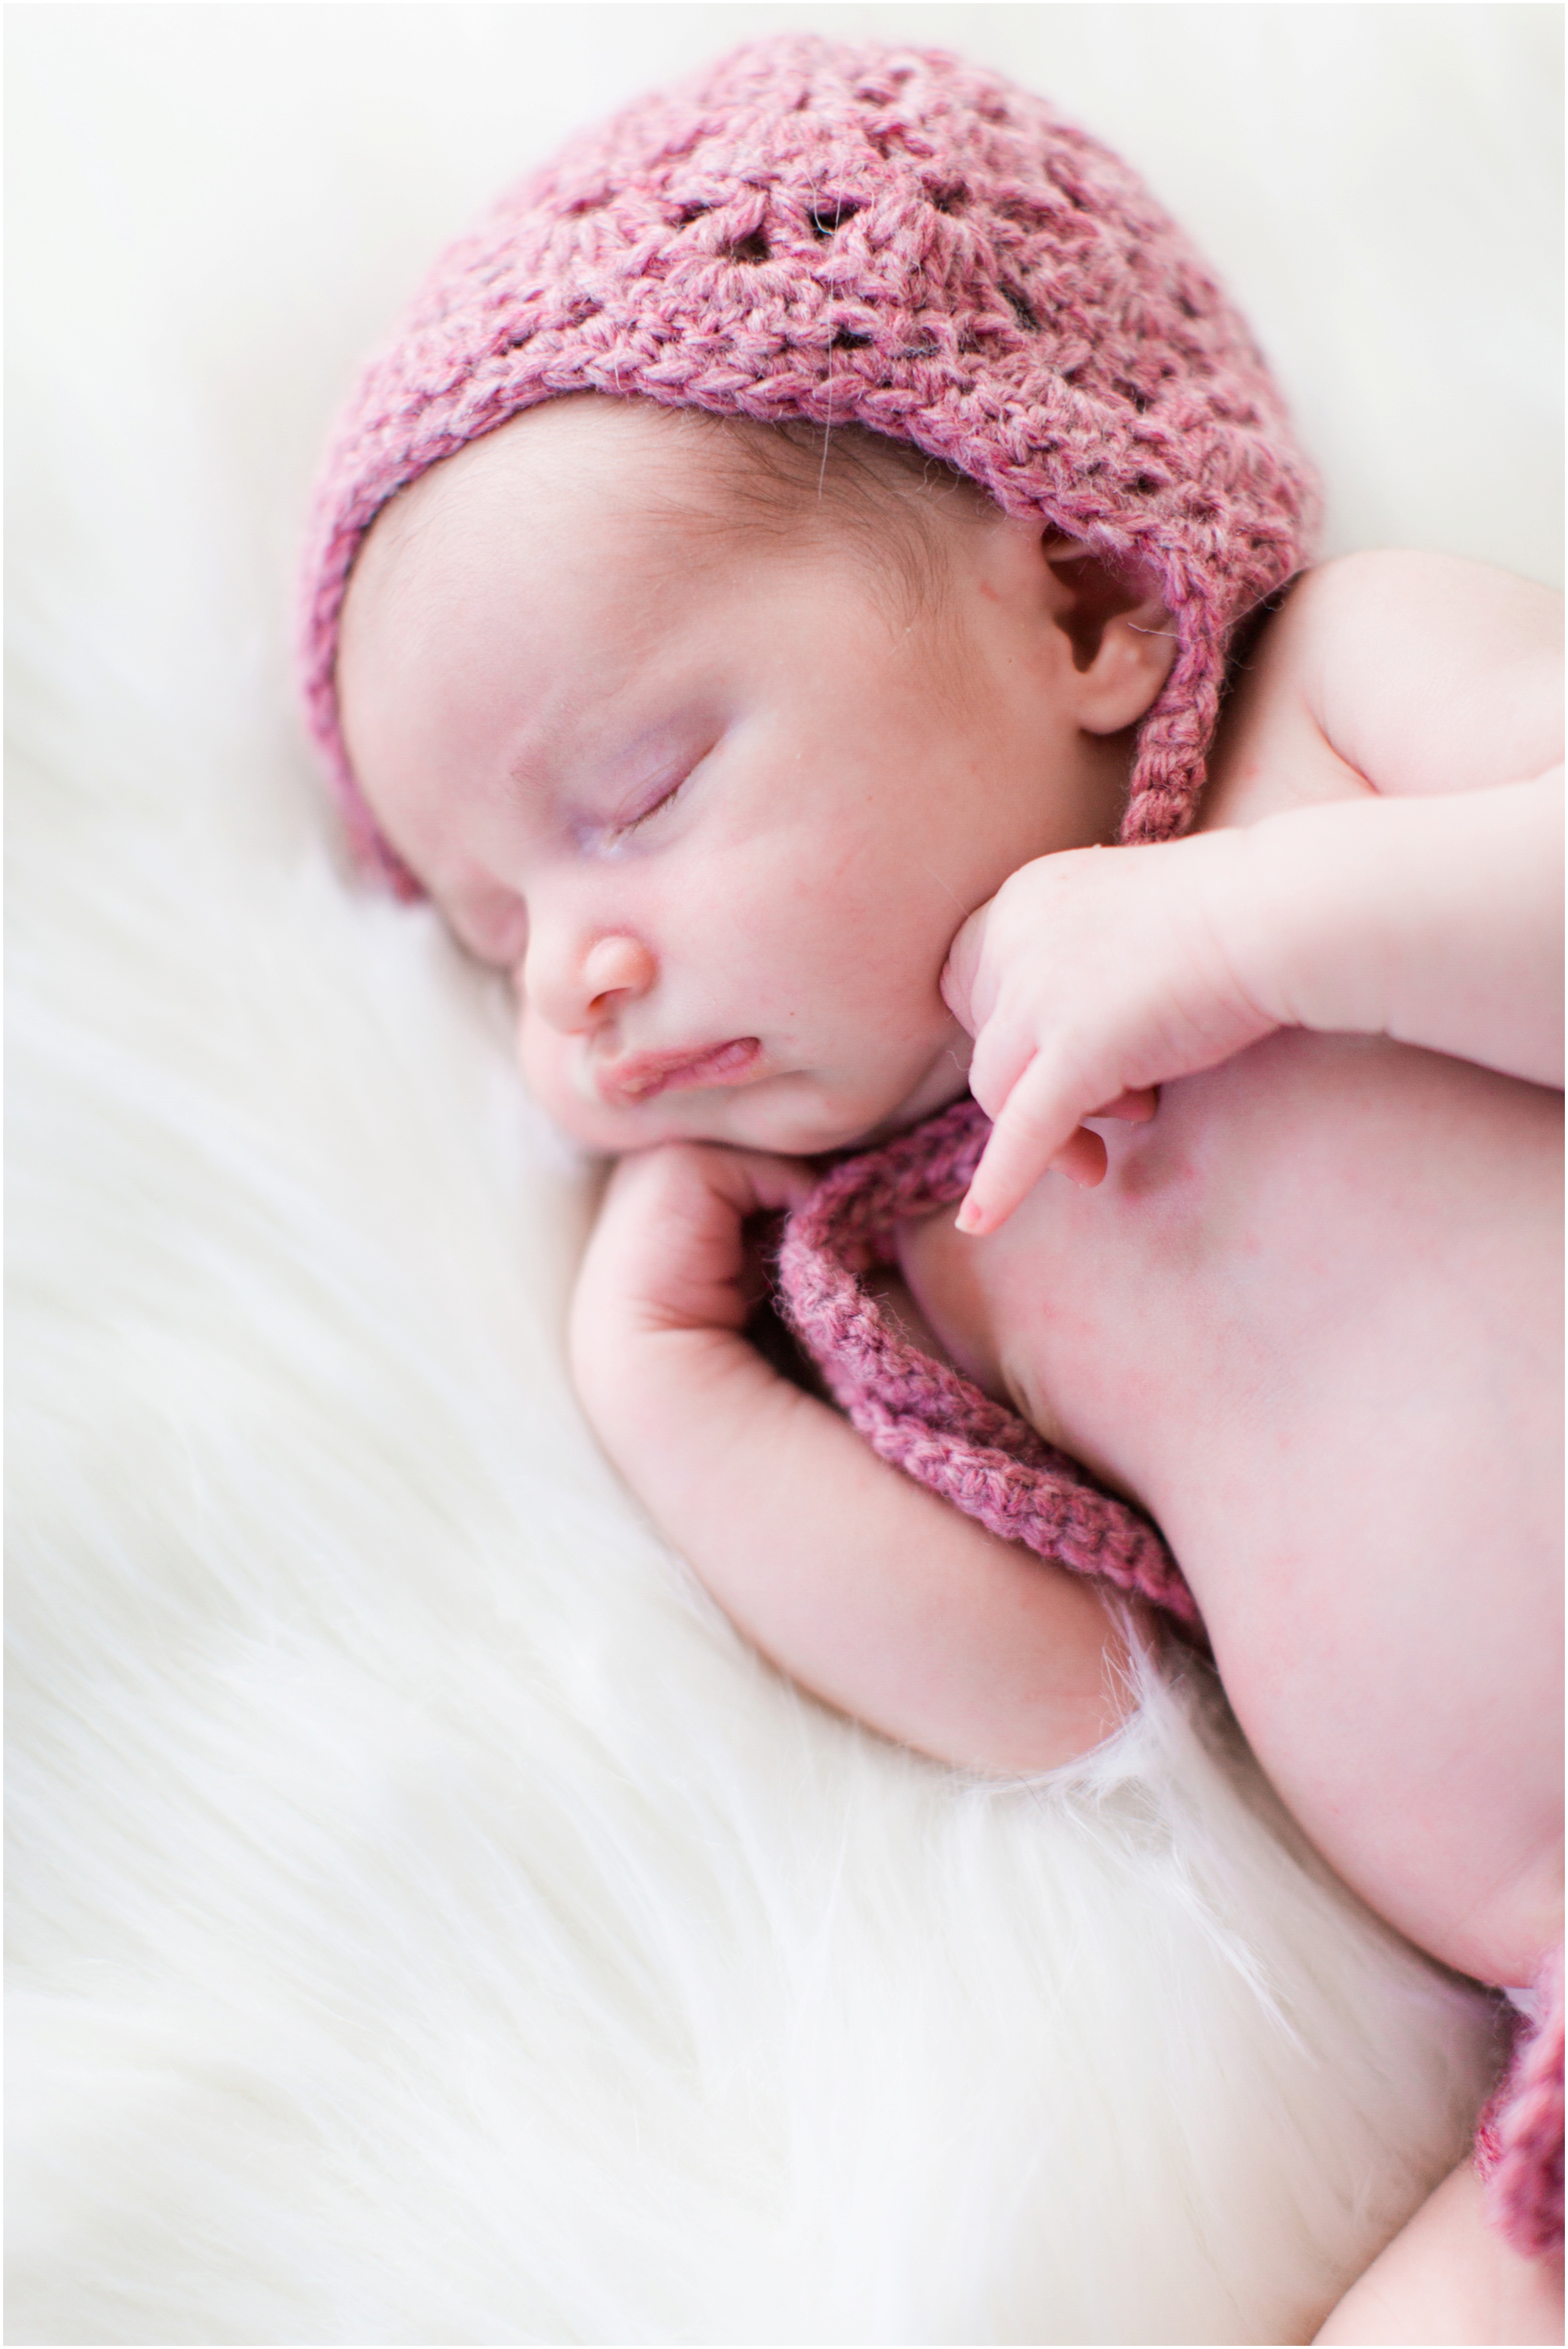 Lifestyle newborn photos by Briana Calderon Photography based in the Greater Seattle & Tacoma, WA_1061.jpg